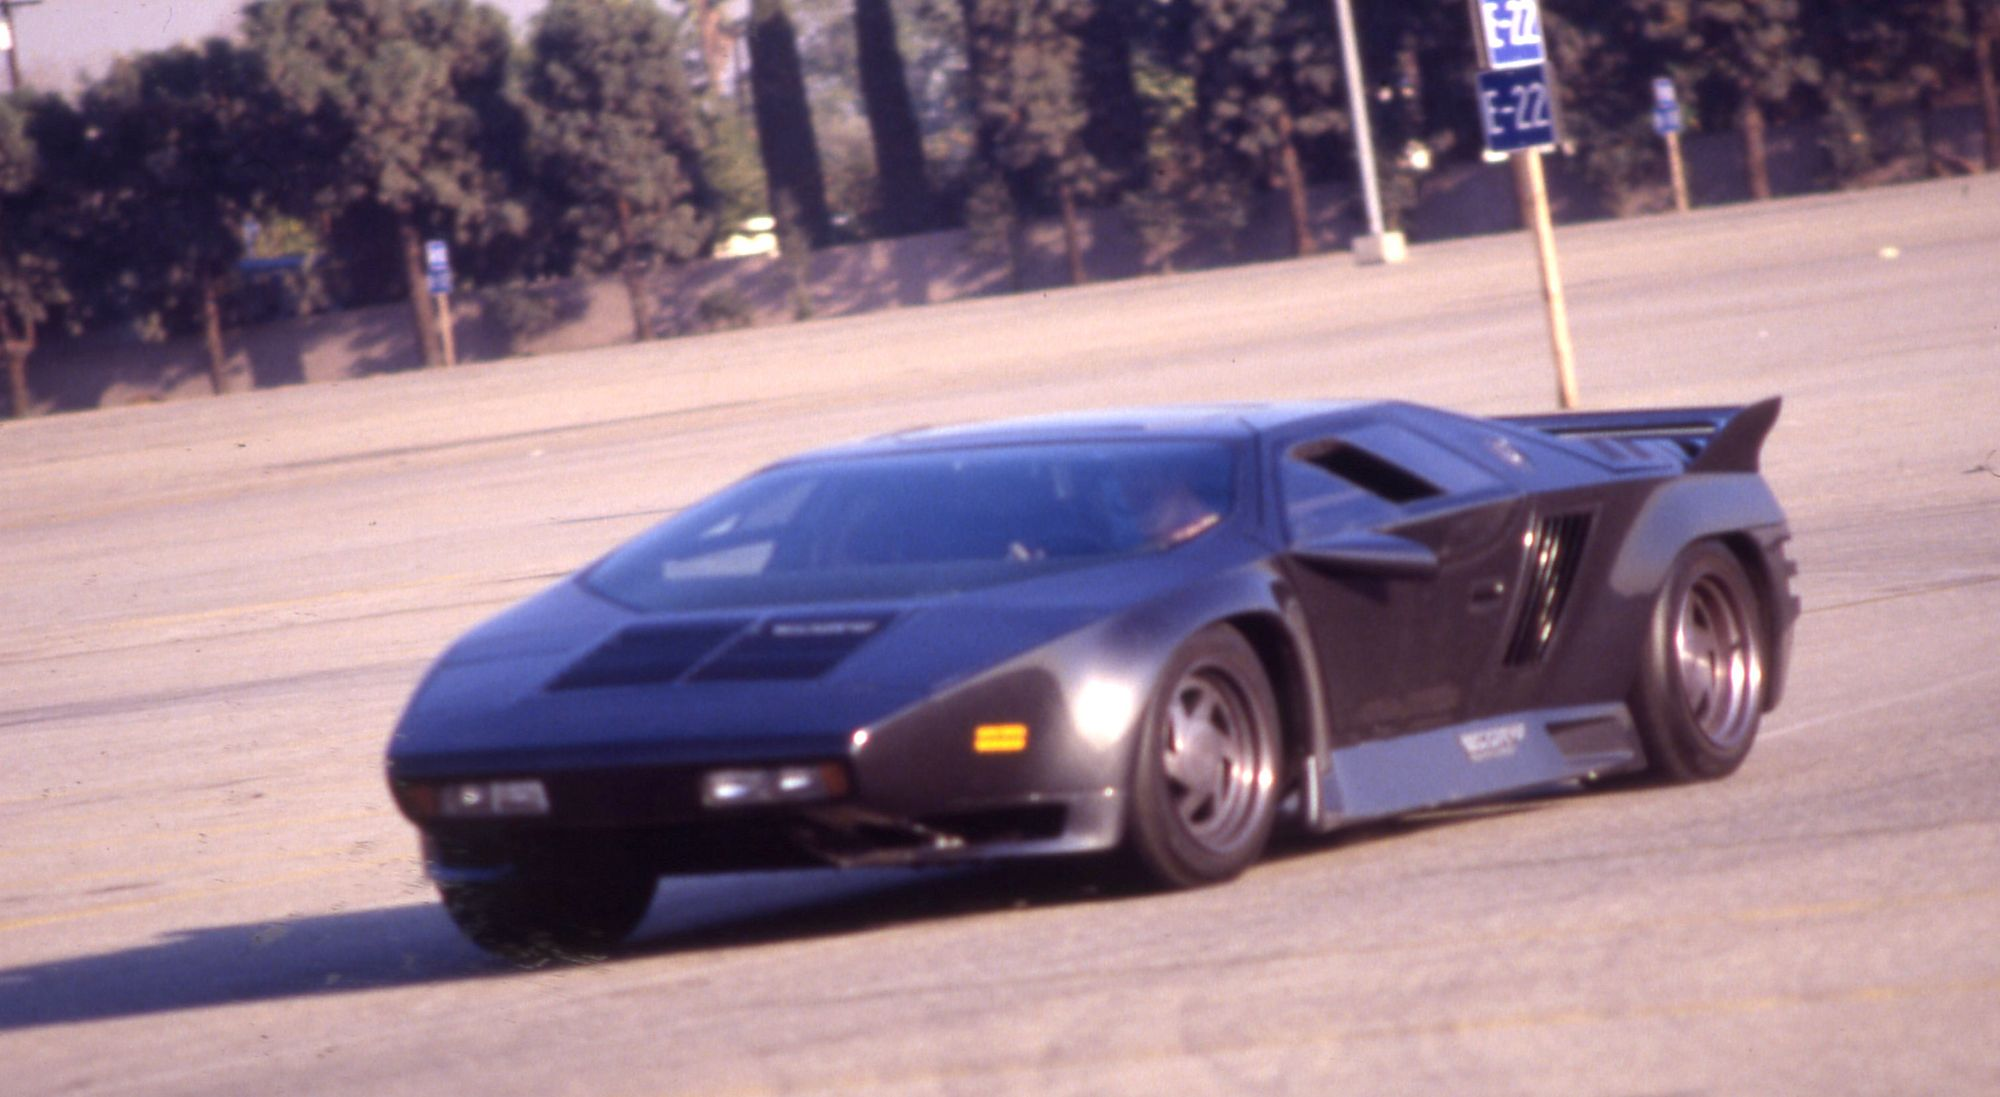 Best Obscure Cars - Ten of the Coolest Obscure Cars You can Buy